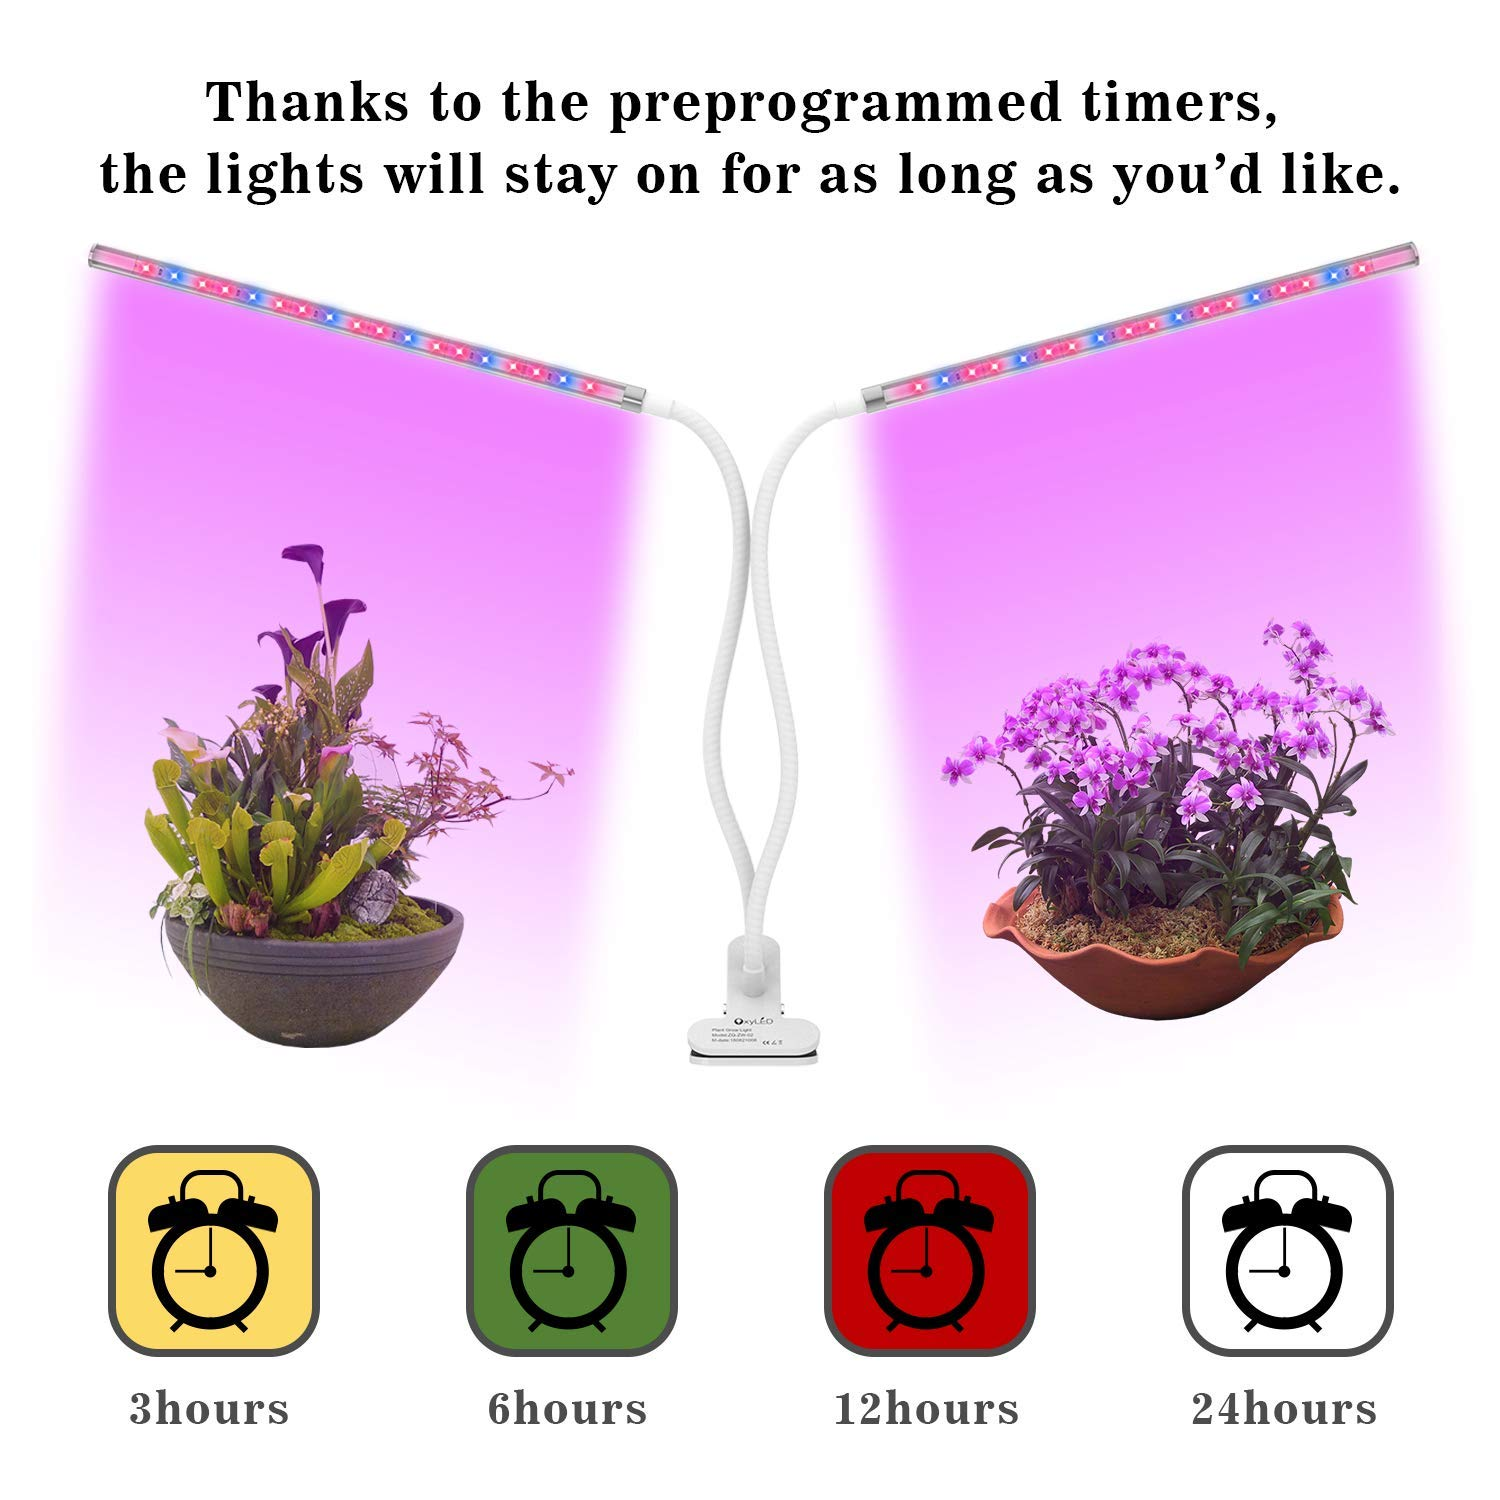 OxyLED Grow Light for Indoor Plants, Timing Function Dual Head Plant Light, 36 LED 5 Dimmable Levels Grow Lamp with Flexible Gooseneck for Hydroponics Greenhouse Gardening by OxyLED (Image #1)